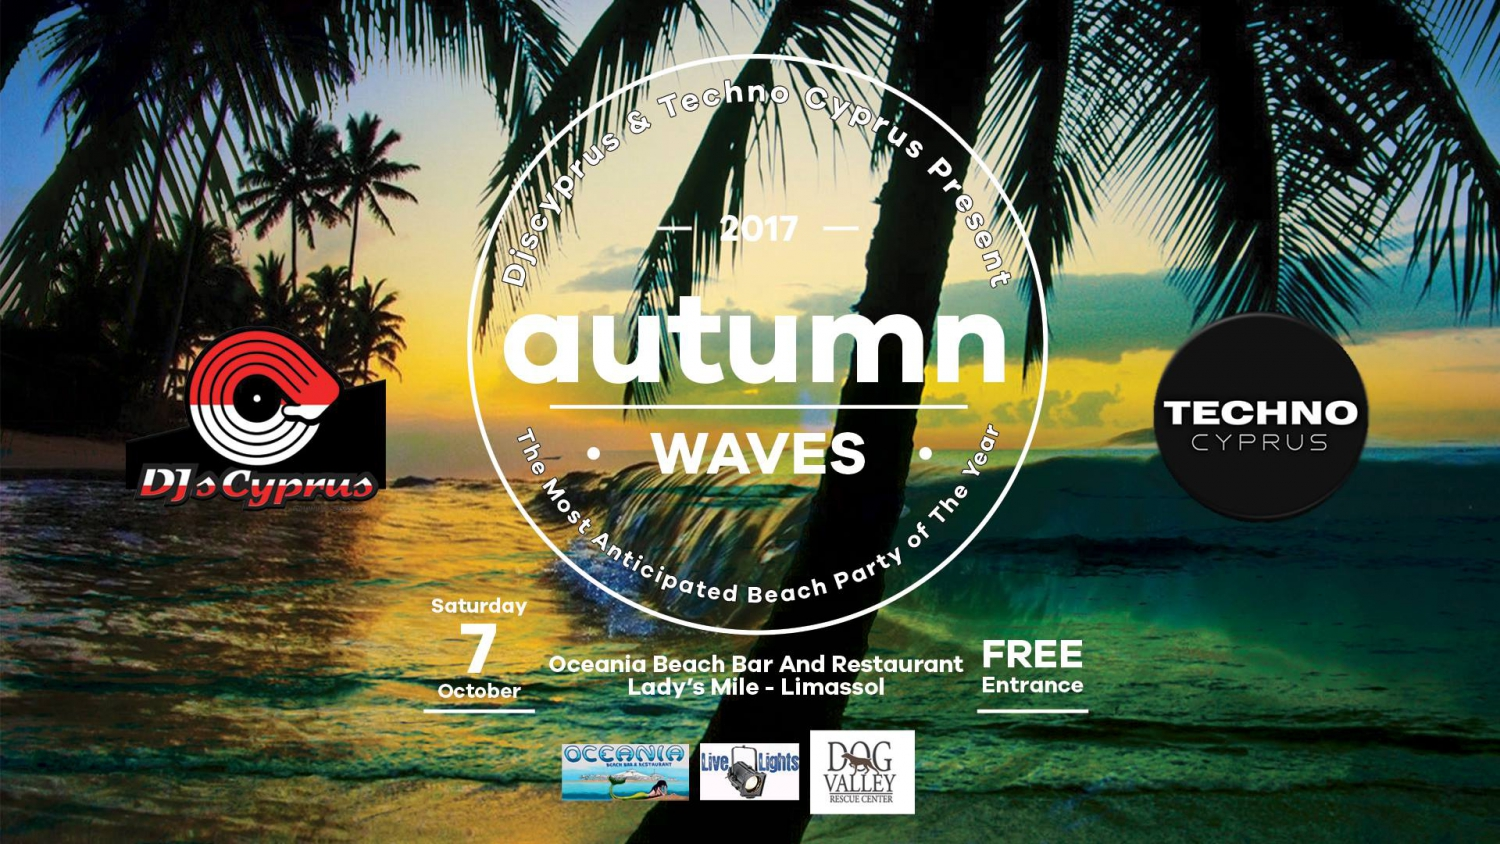 Djscyprus & Techno Cyprus Present 'Autumn Waves' Beach Party